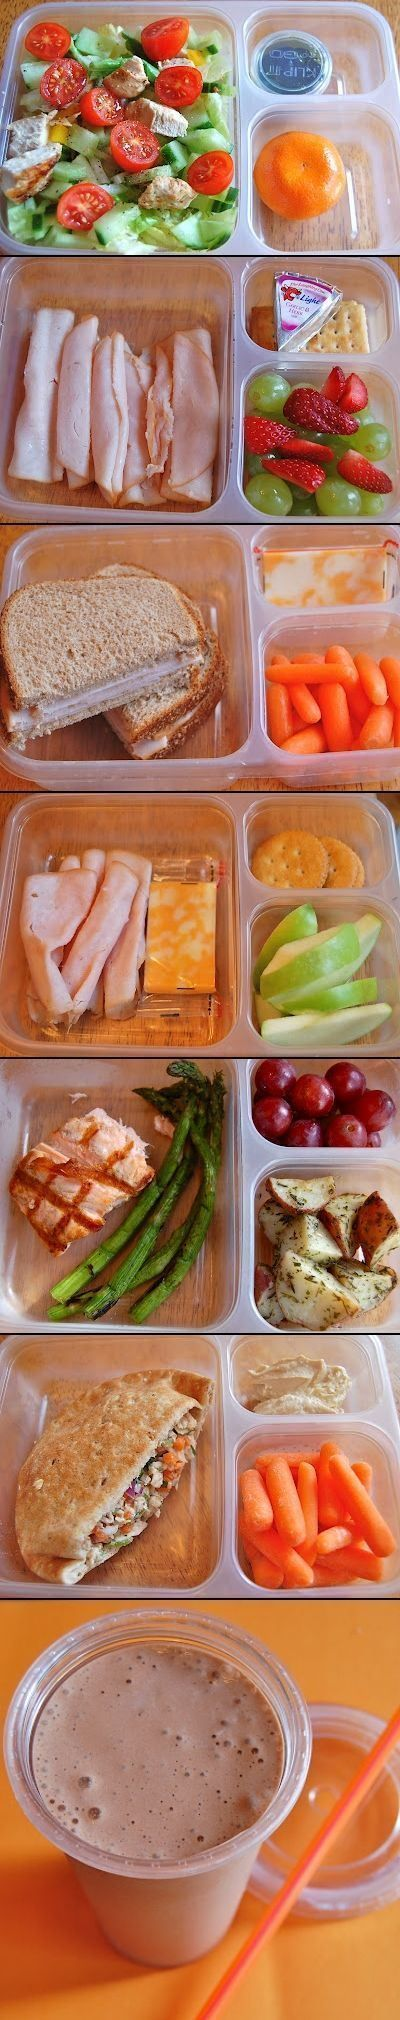 Inside My Meal Prepping Routine